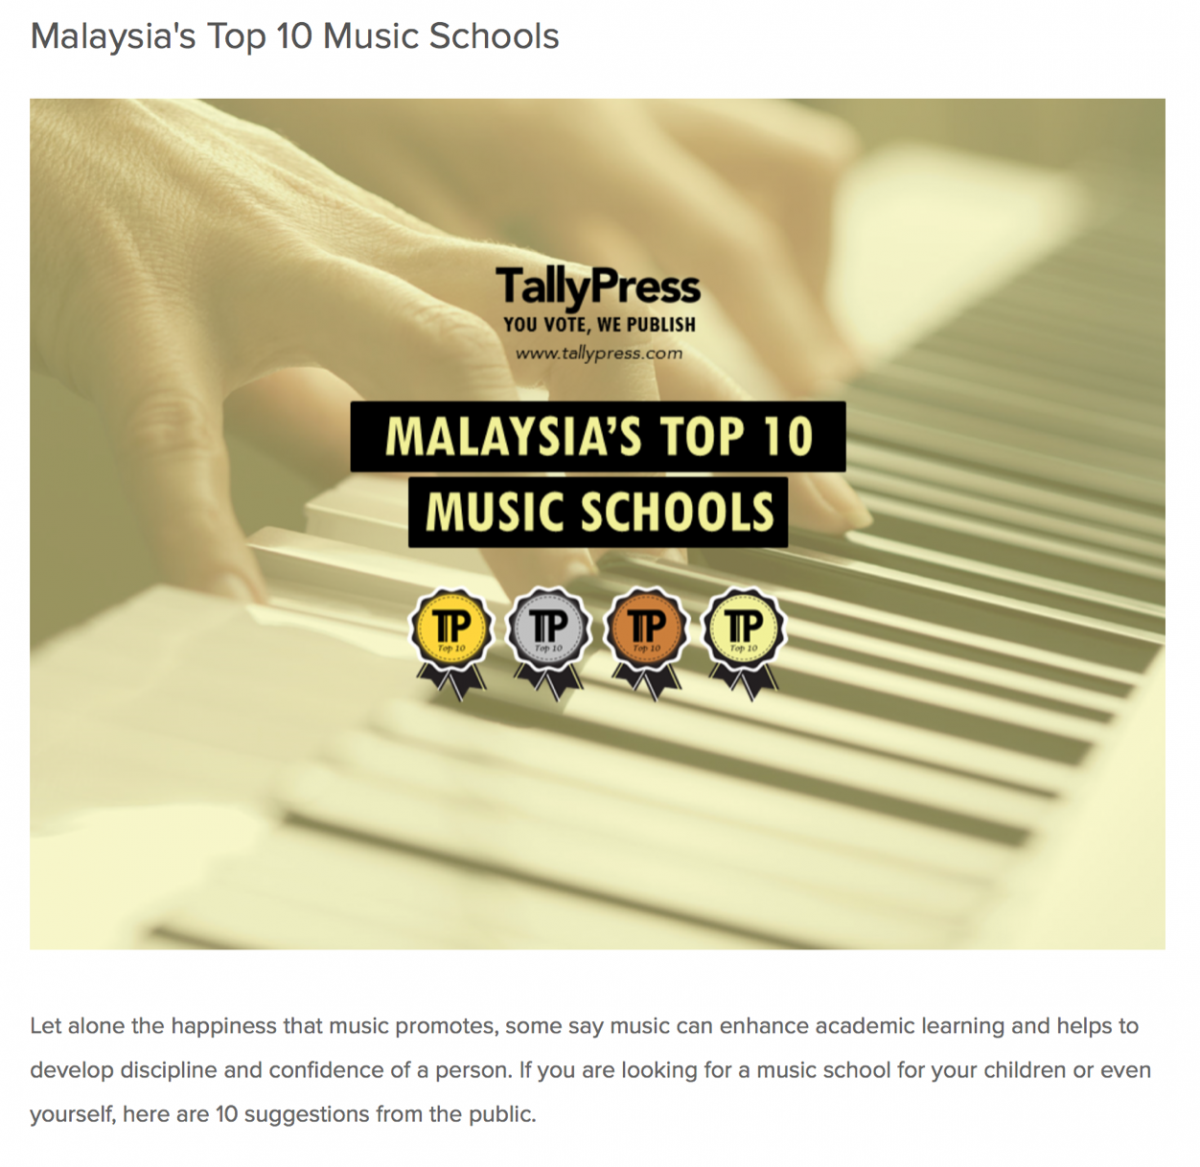 MALAYSIA'S TOP 10 MUSIC SCHOOLS